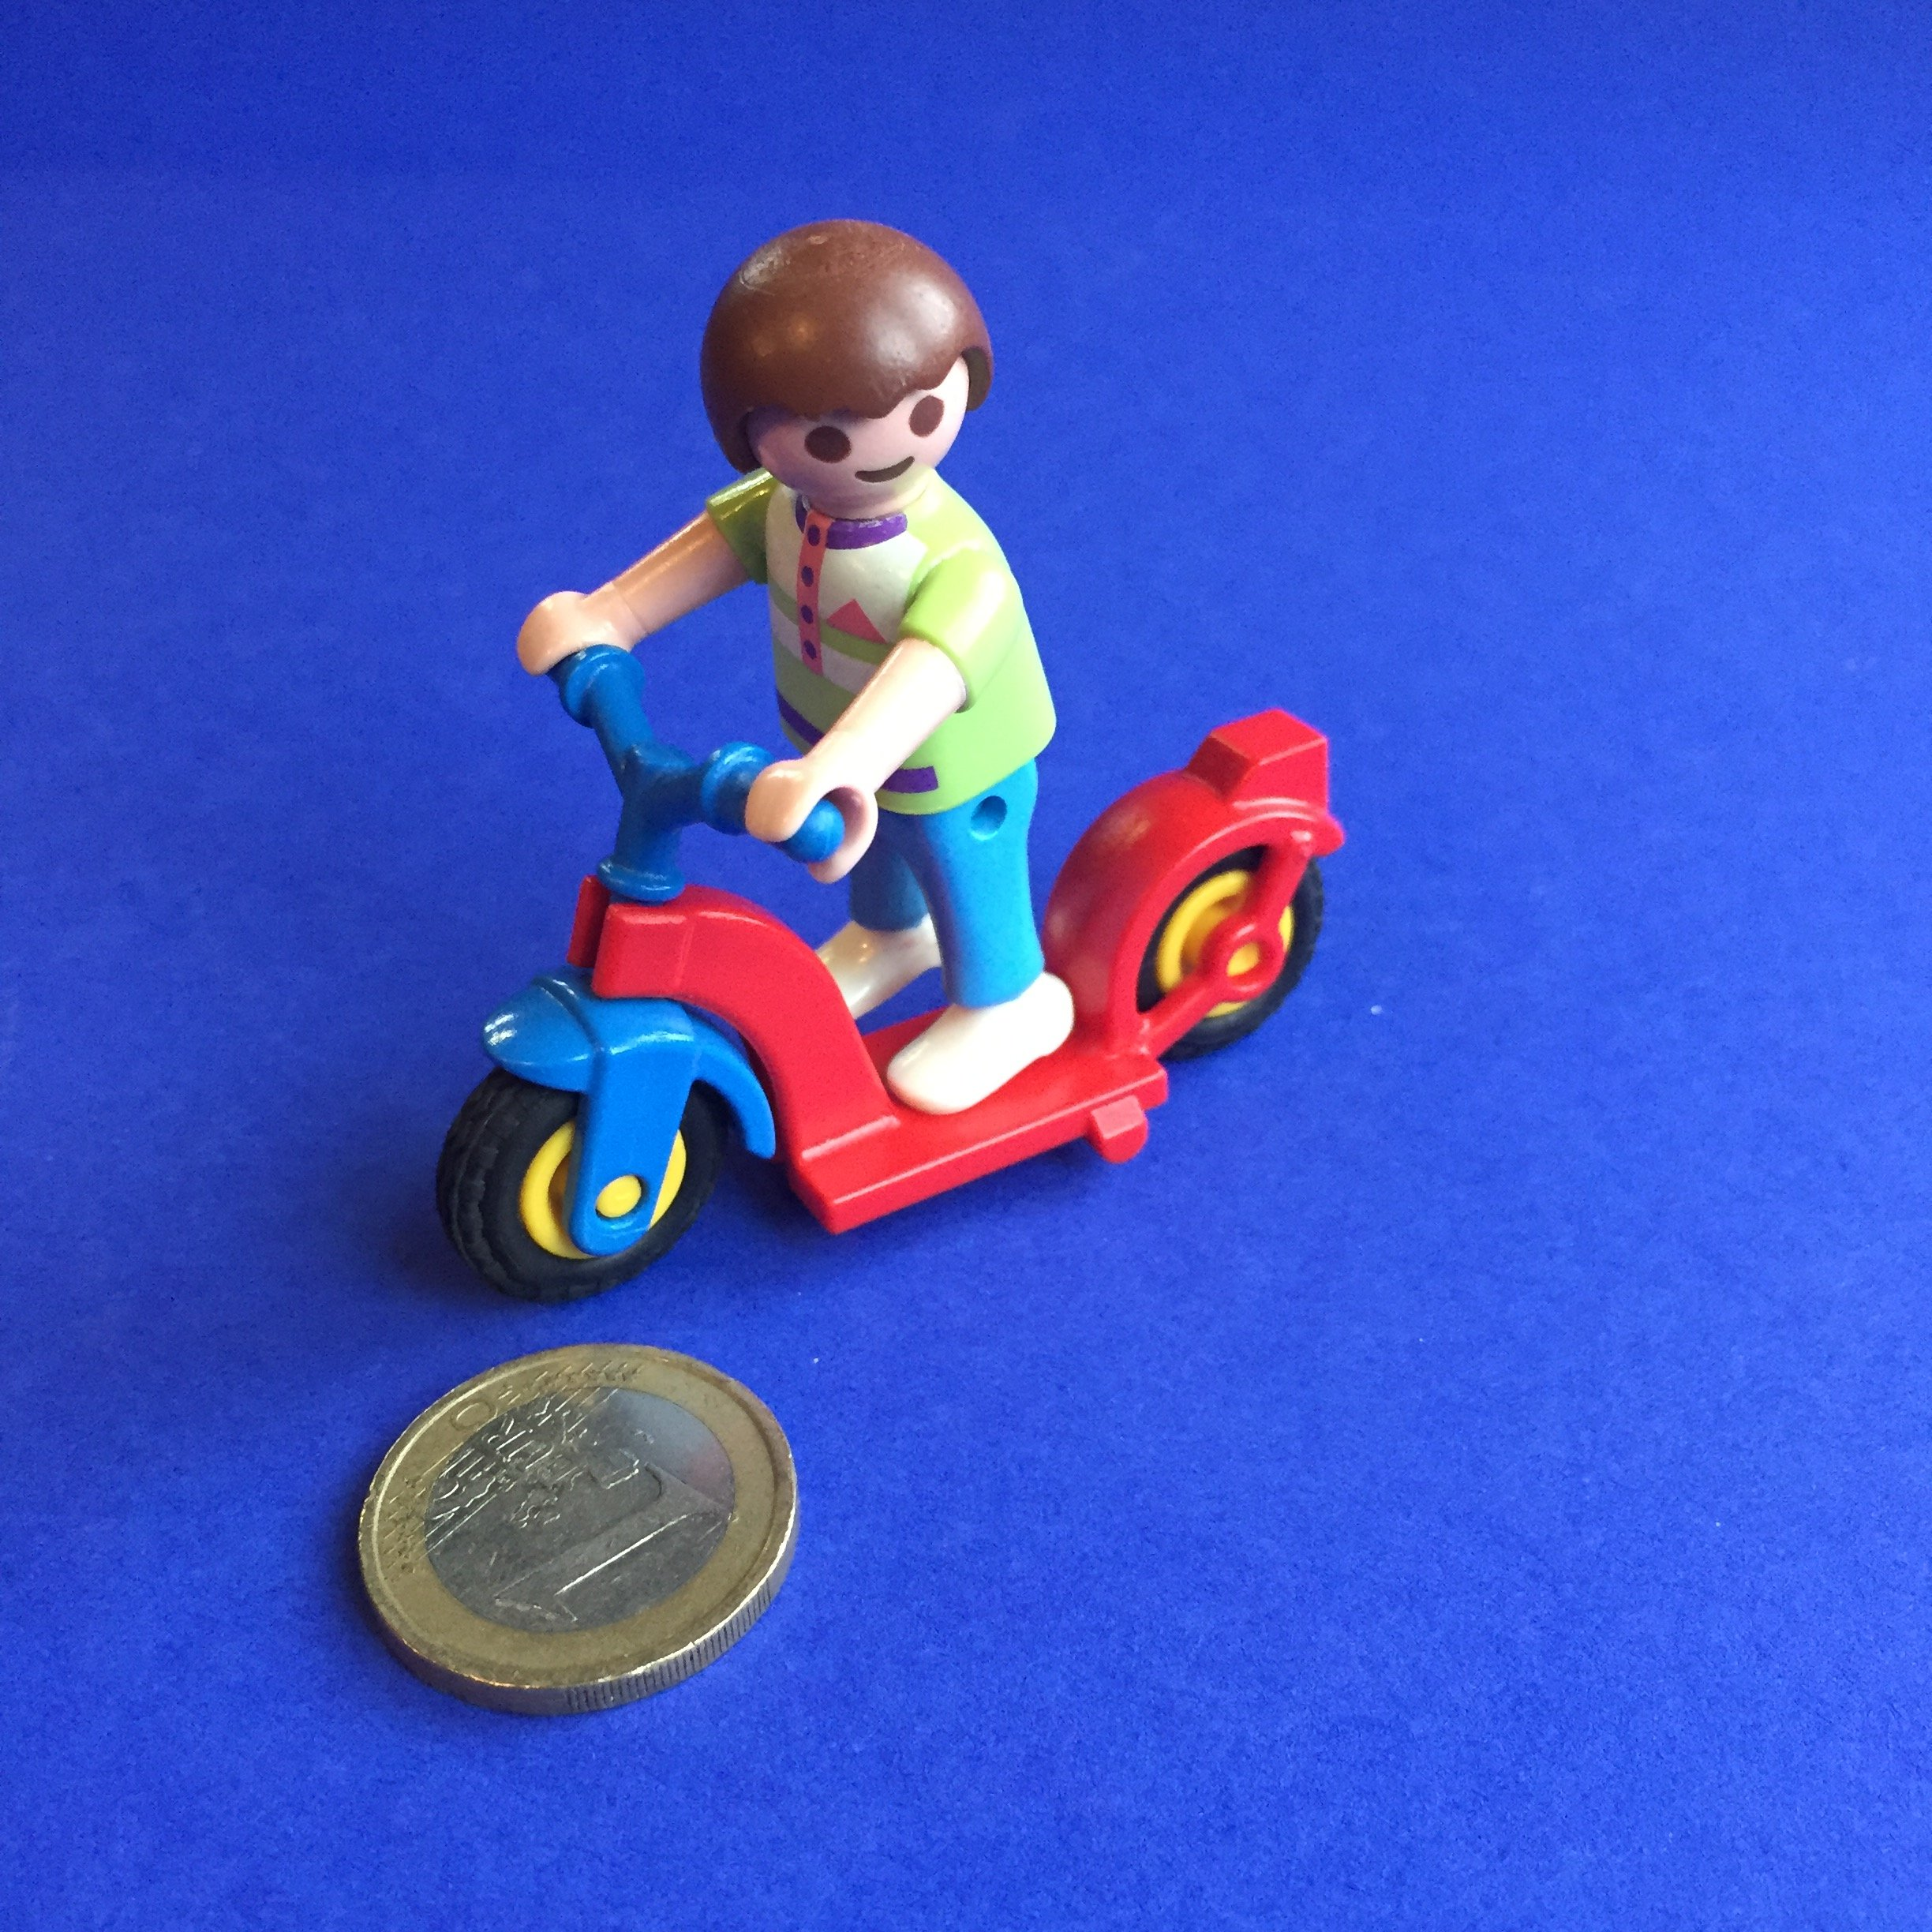 Playmobil-jongetje-step